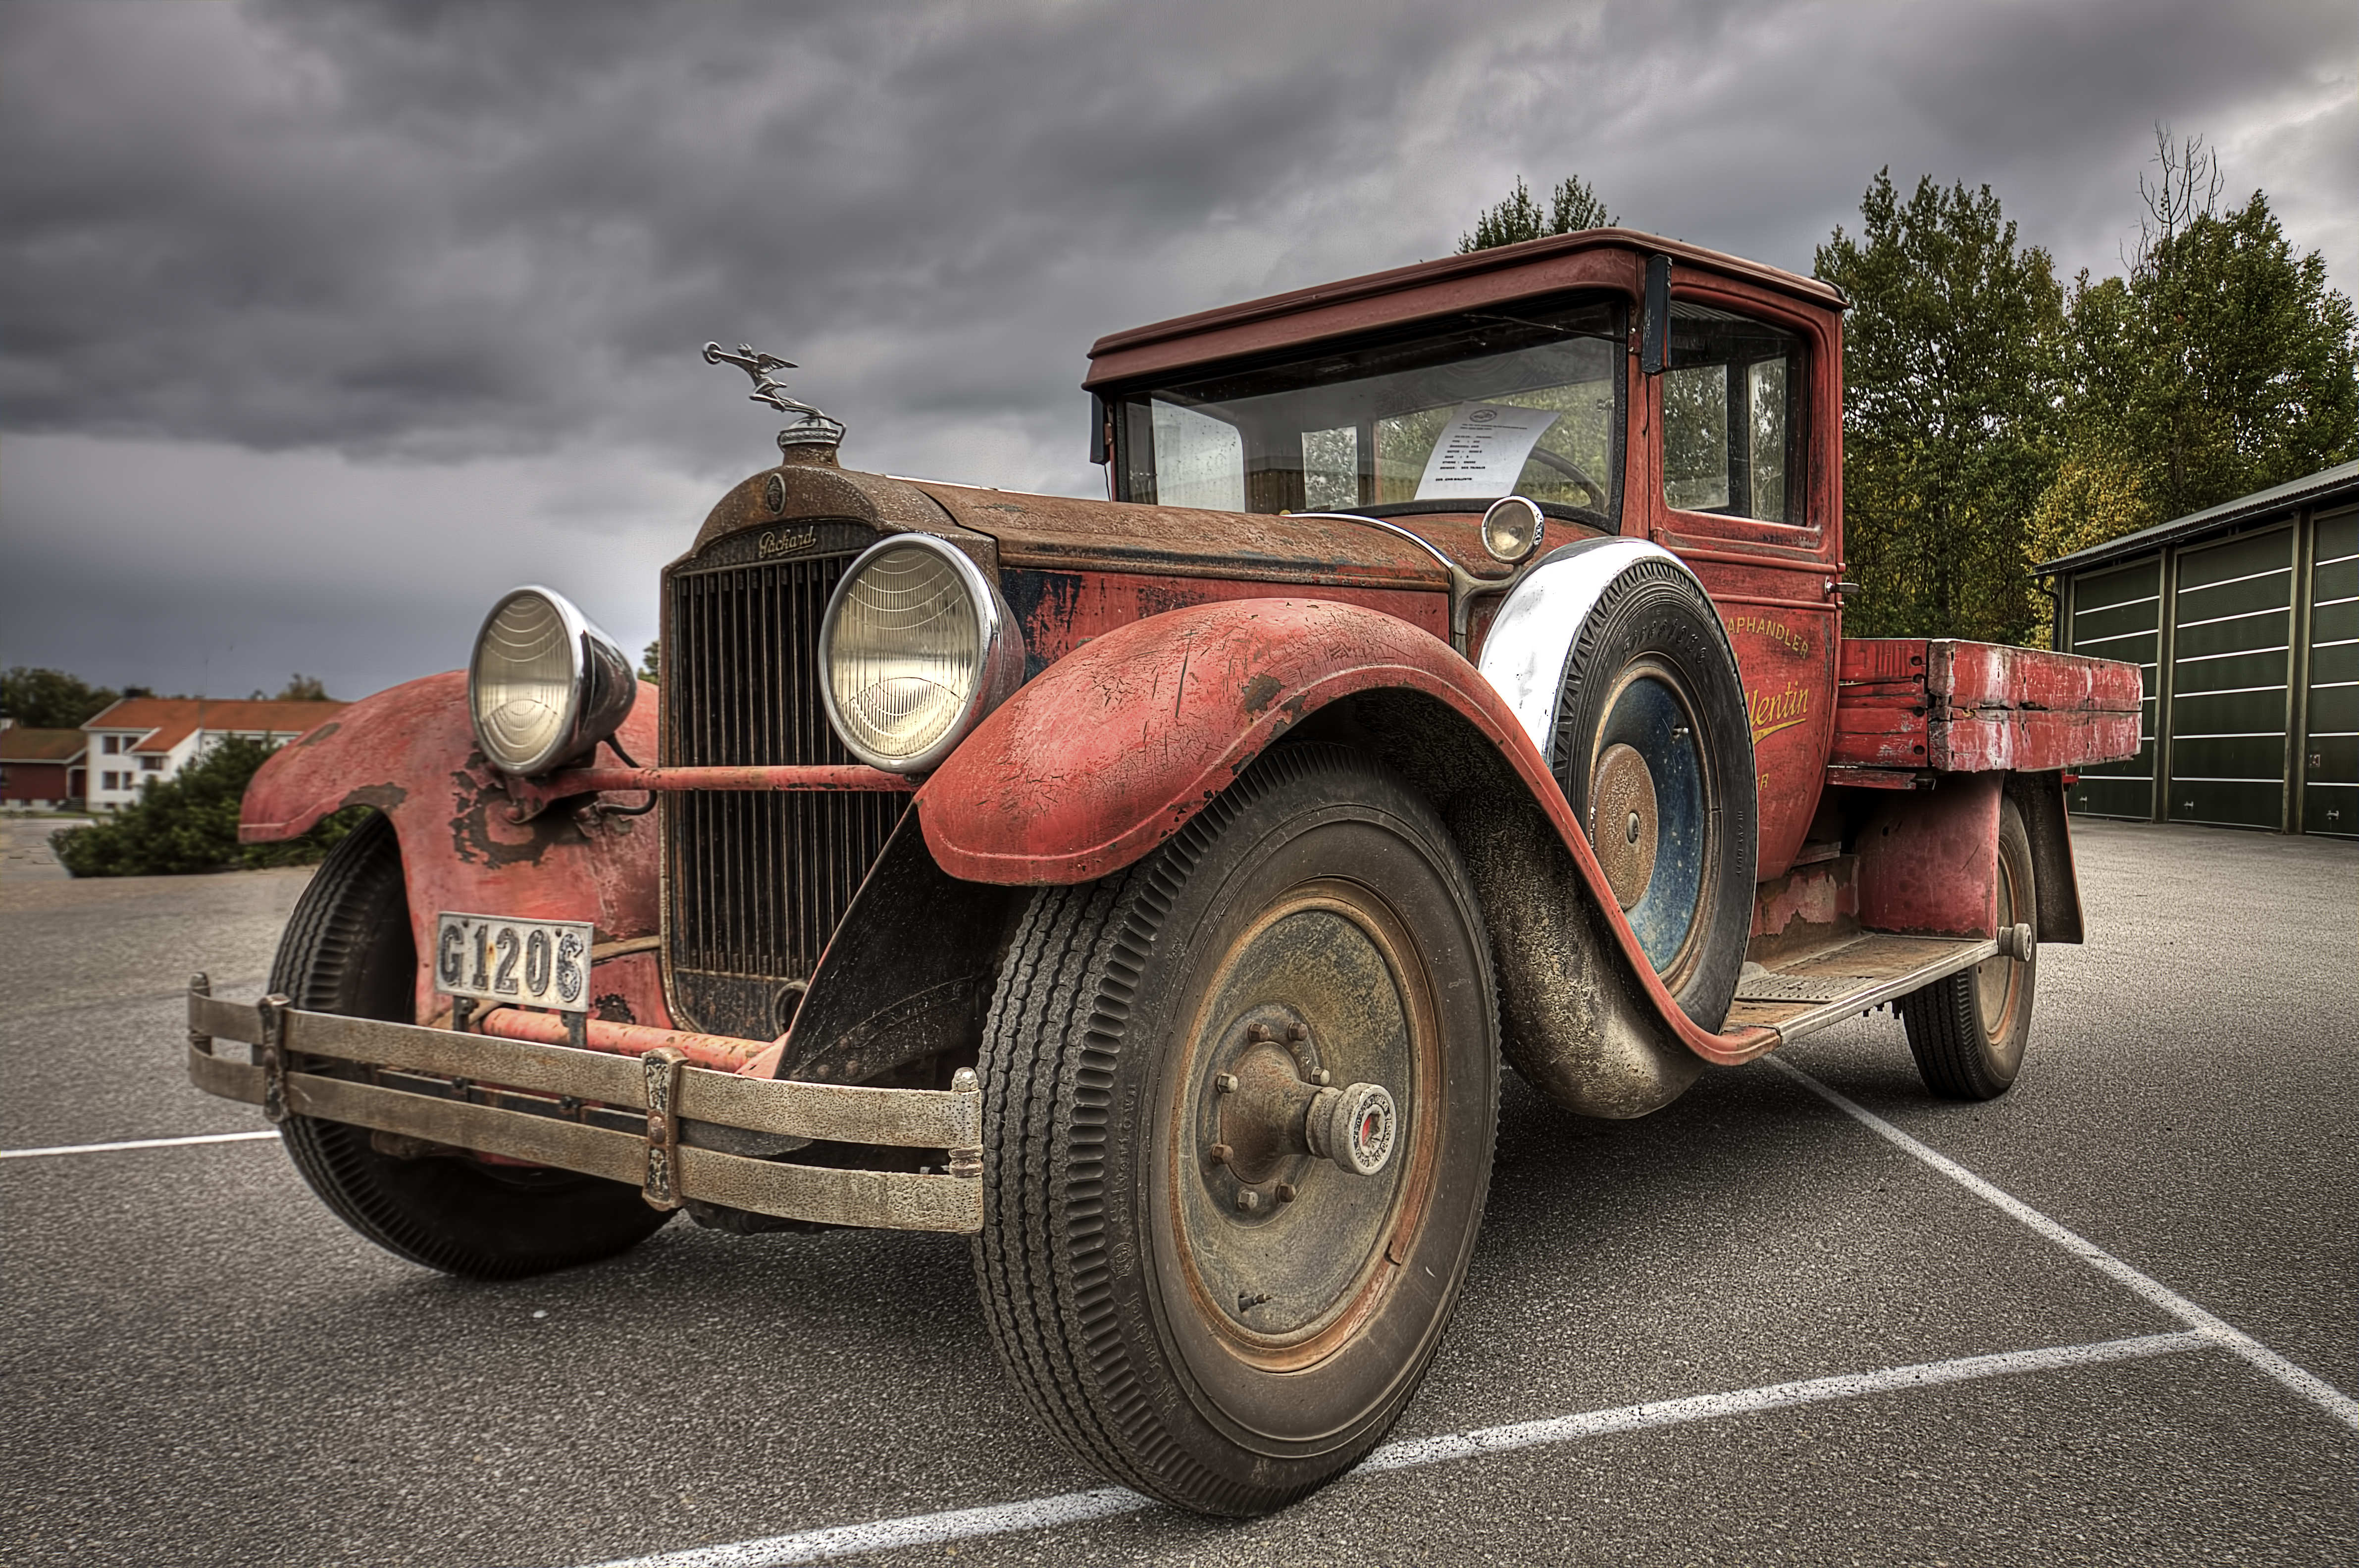 Old truck | HDR creme